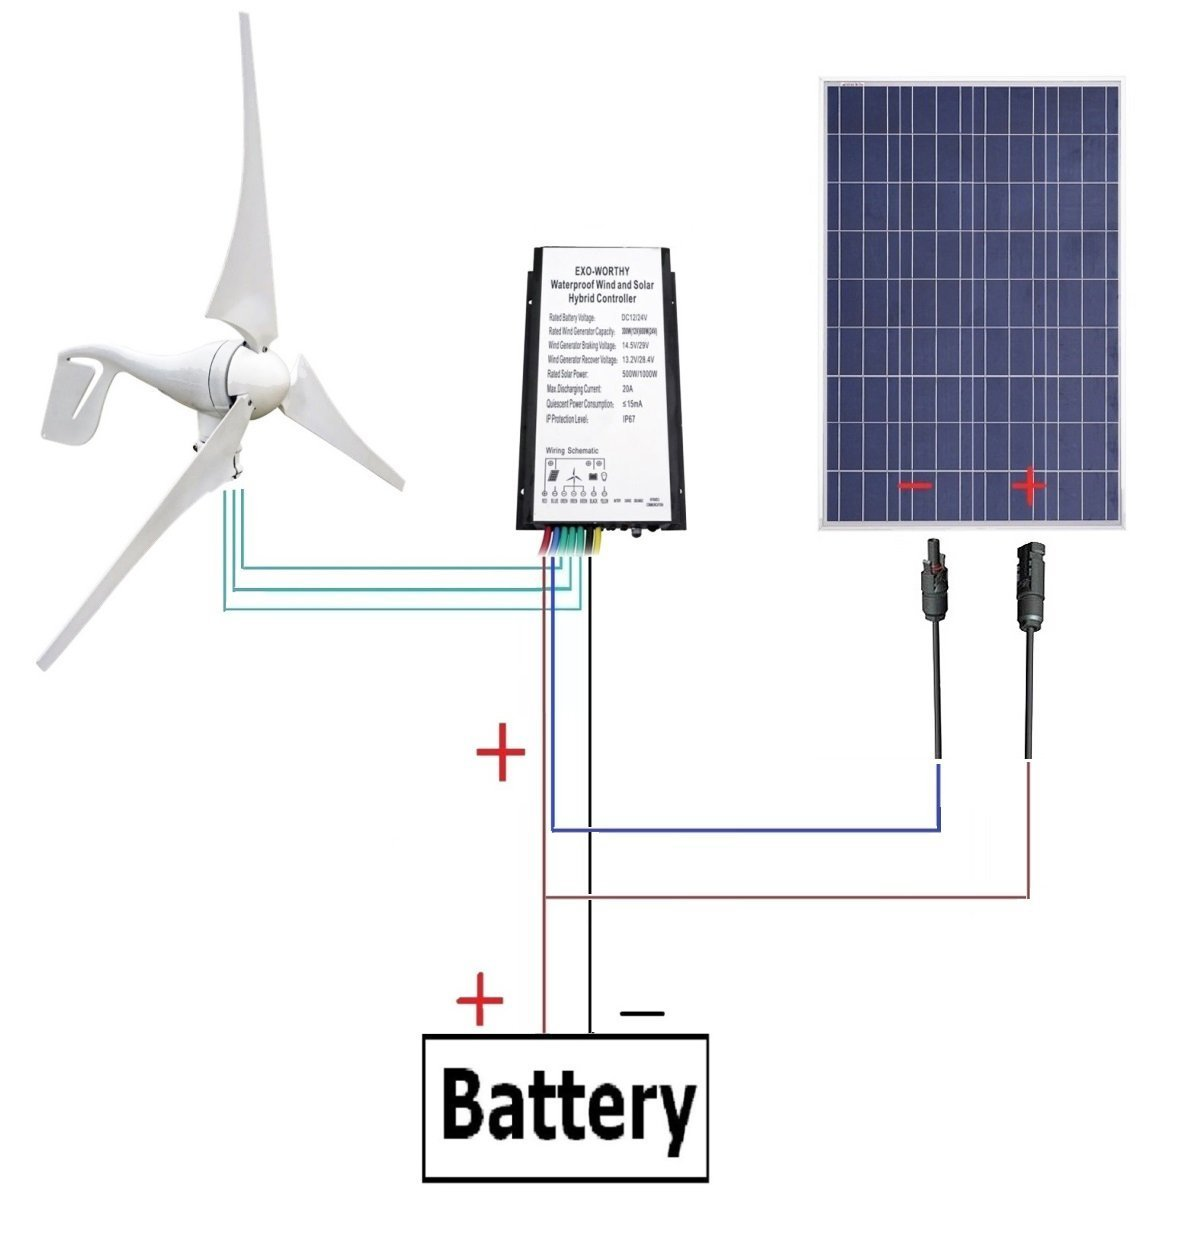 Eco Worthy 500w Off Grid Solar Wind Power System Kits For Charging Garden Light Wiring Diagram 12 Volt Batteries 400w Turbine Generator 100w Polycrystalline 12v Panel